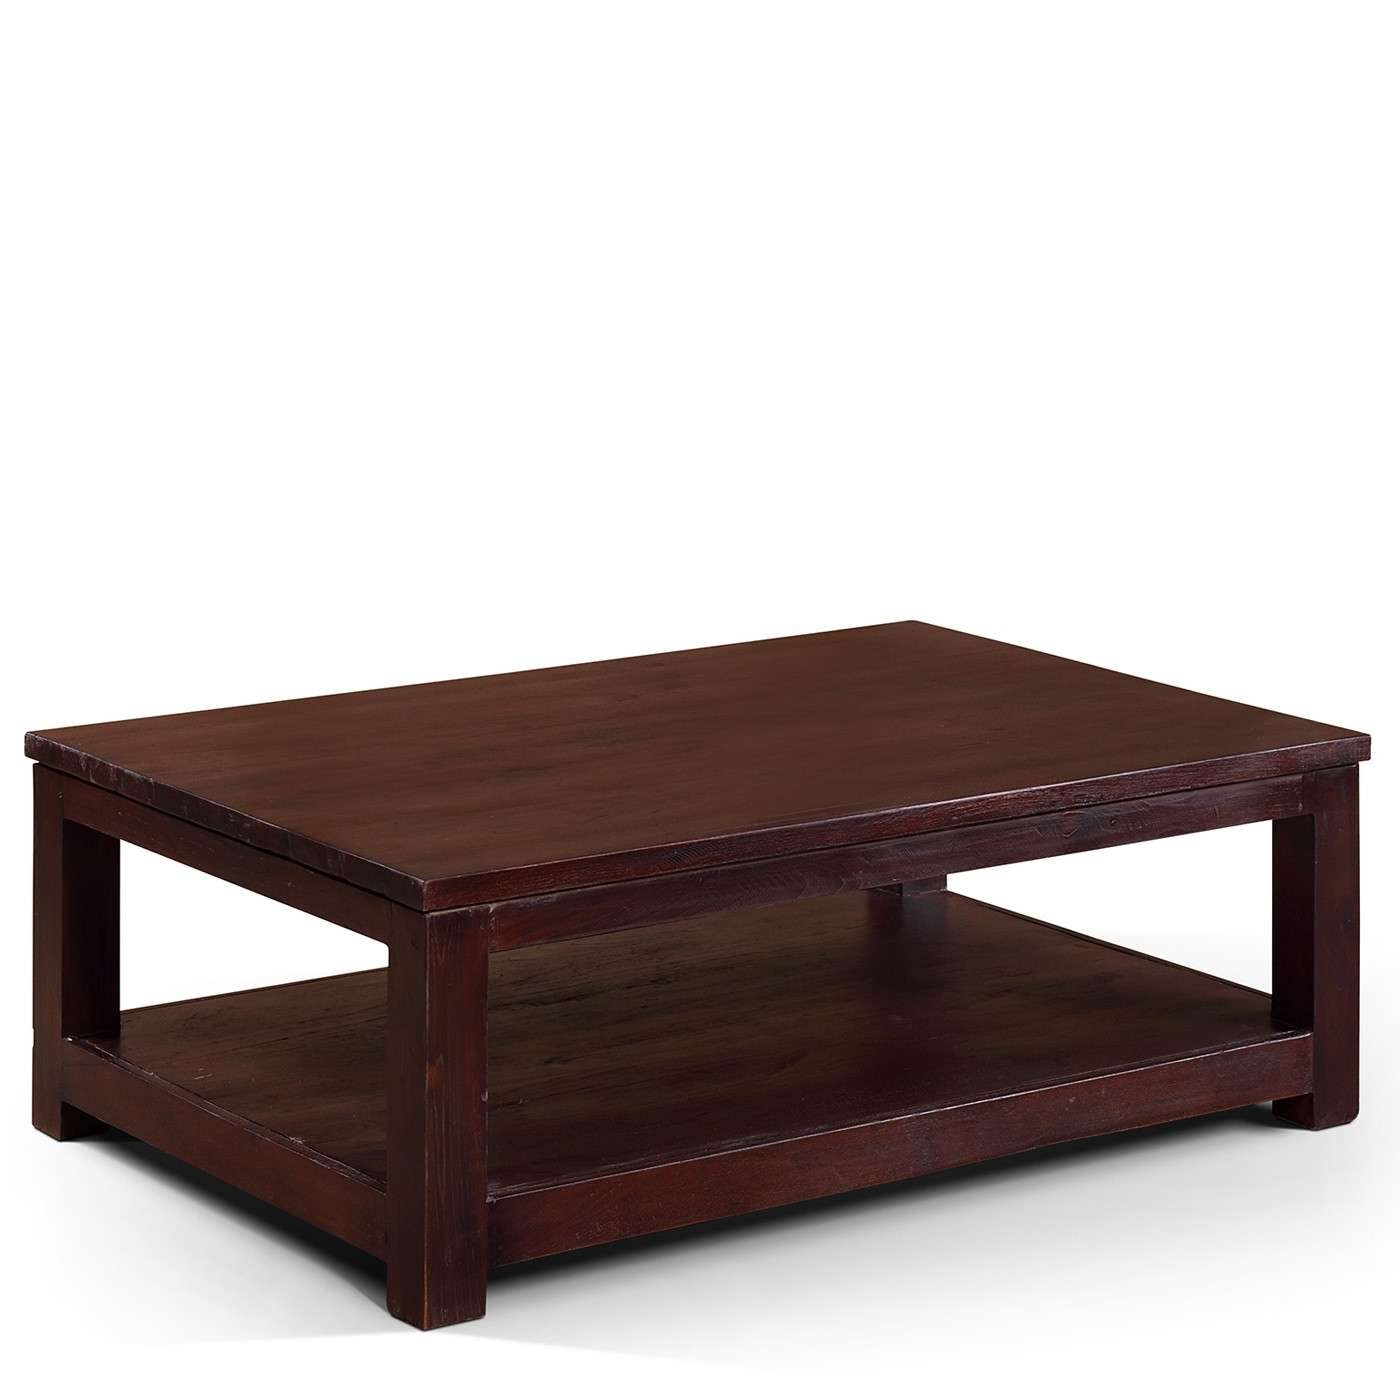 Rectangle Antique Solid Wood Dark Brown Coffee Table Designs Ideas Regarding Popular Dark Brown Coffee Tables (View 16 of 20)